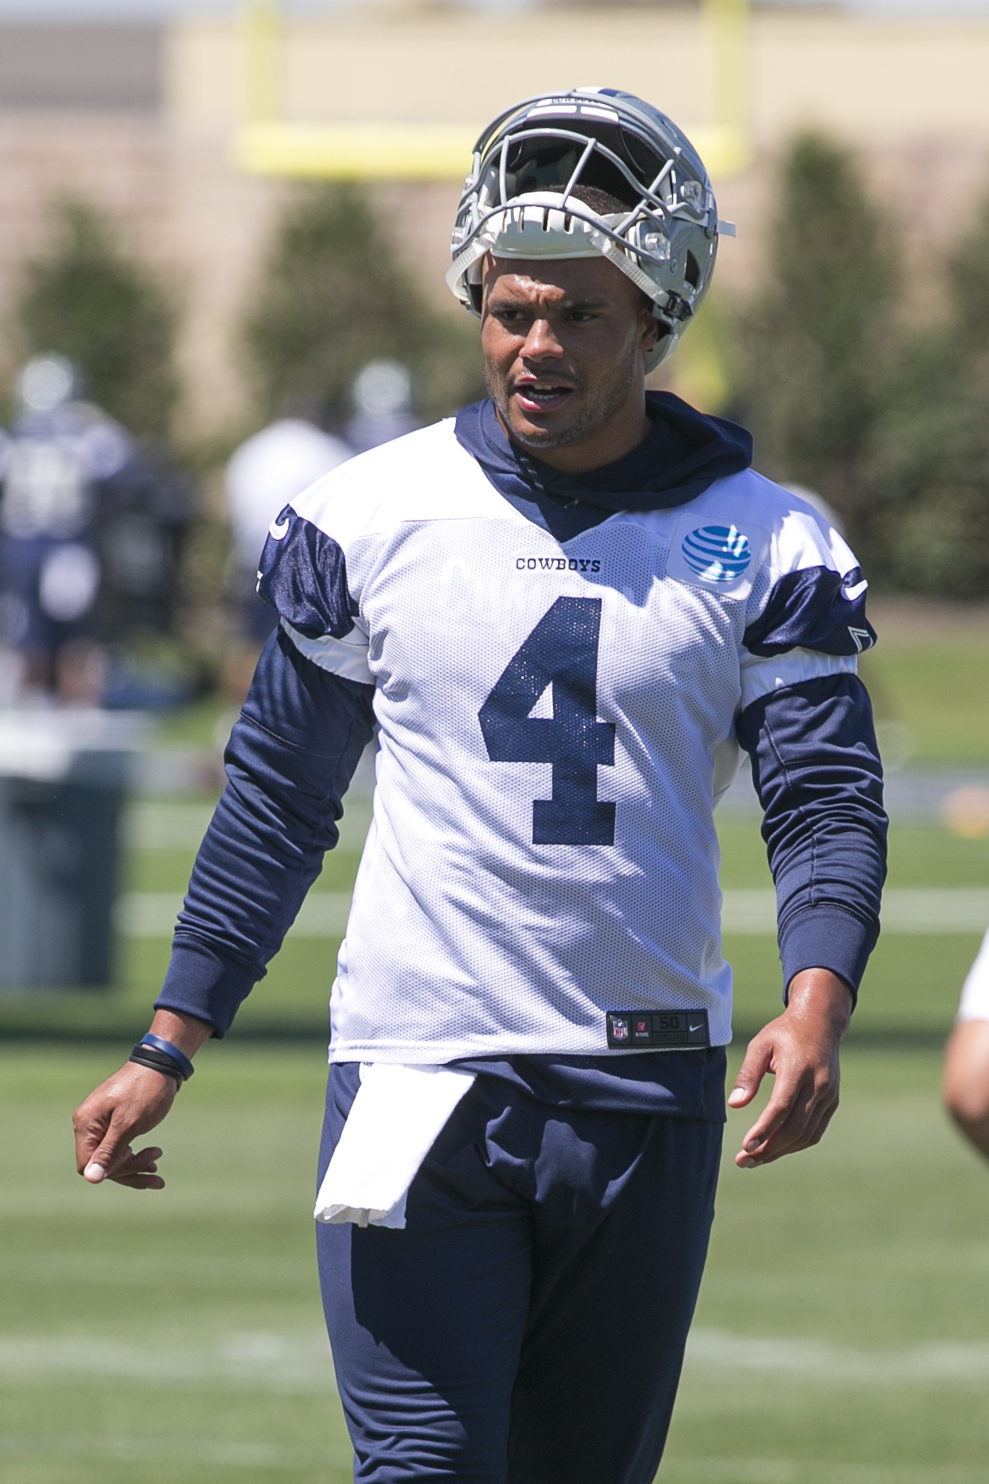 10072076-nfl-dallas-cowboys-ota